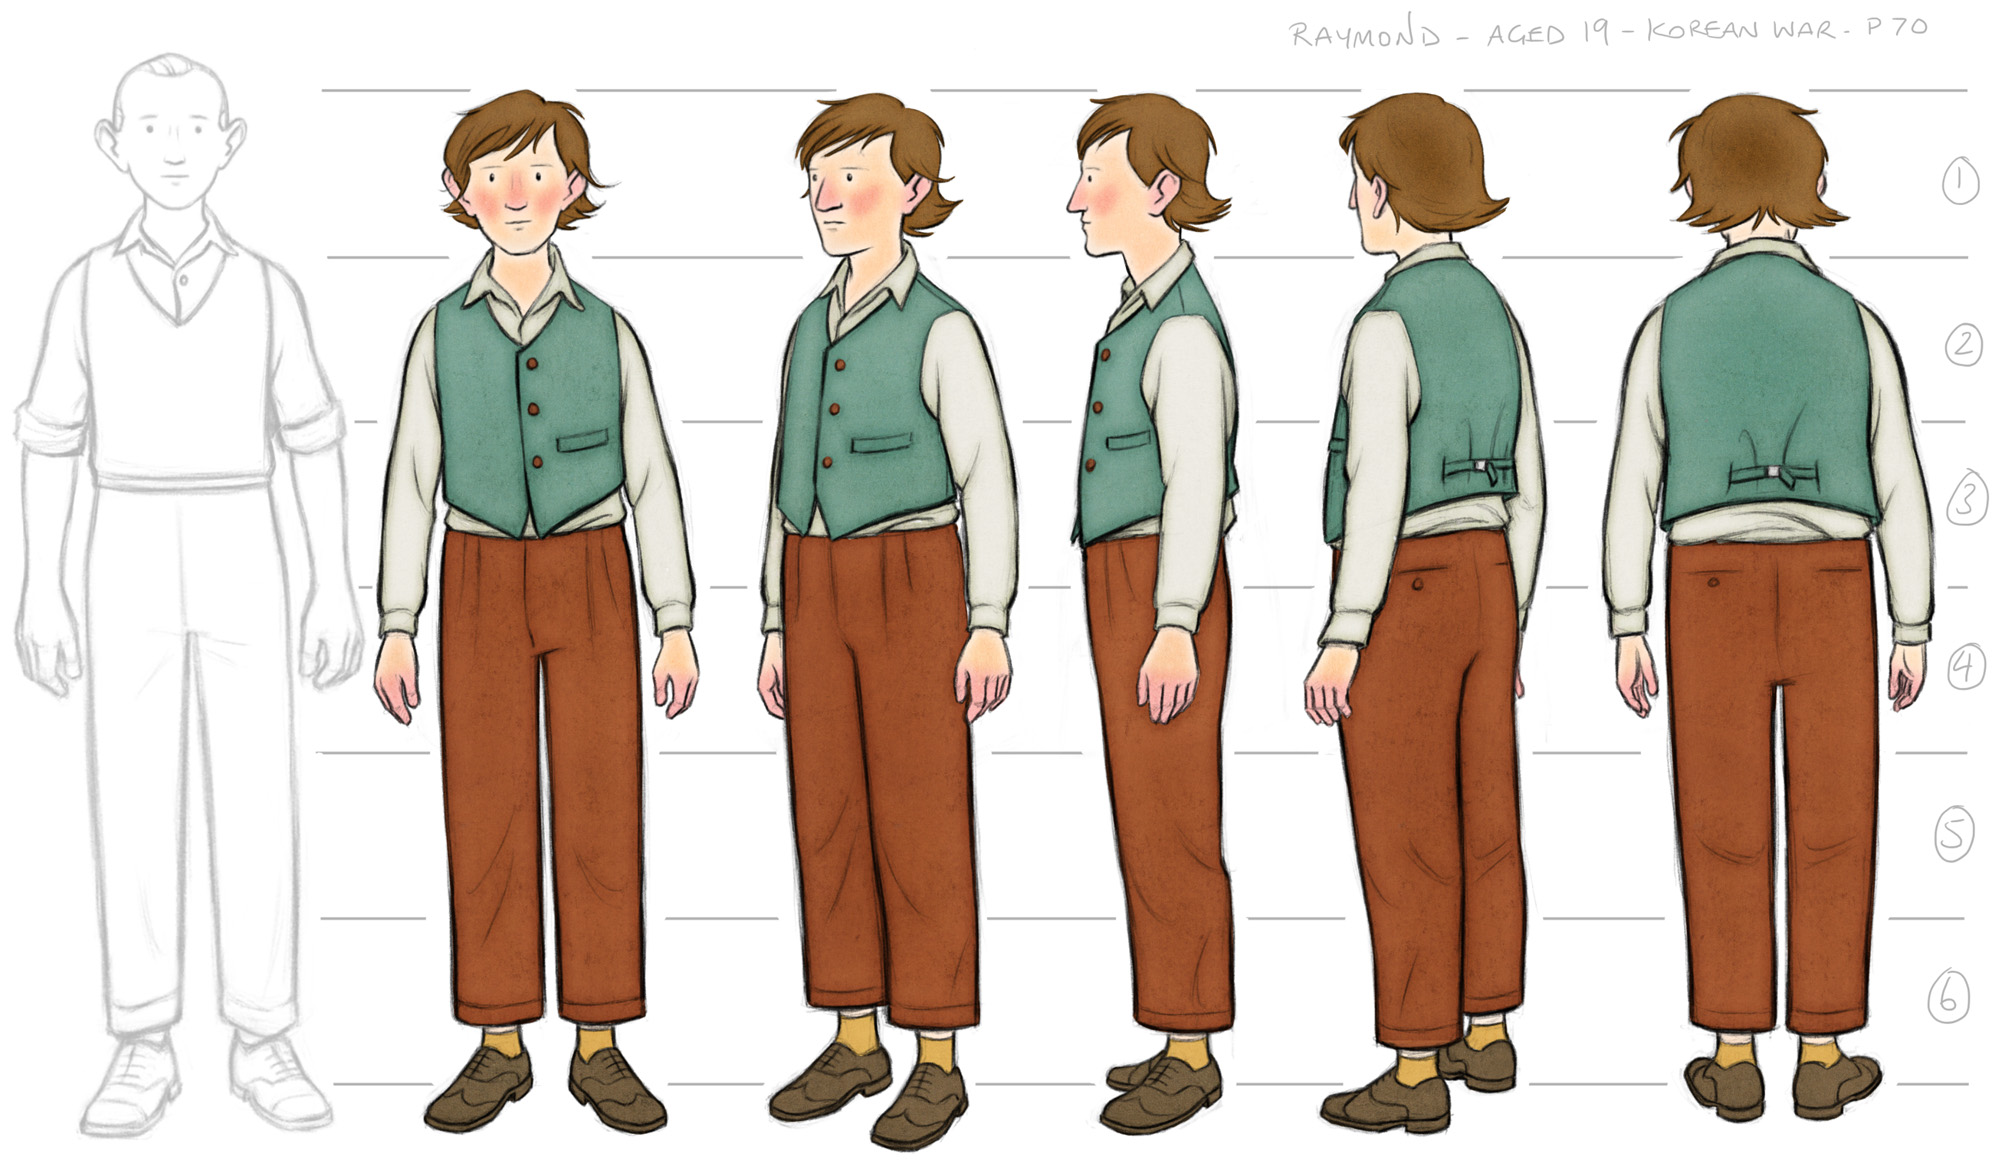 Raymond Colour Costume Design